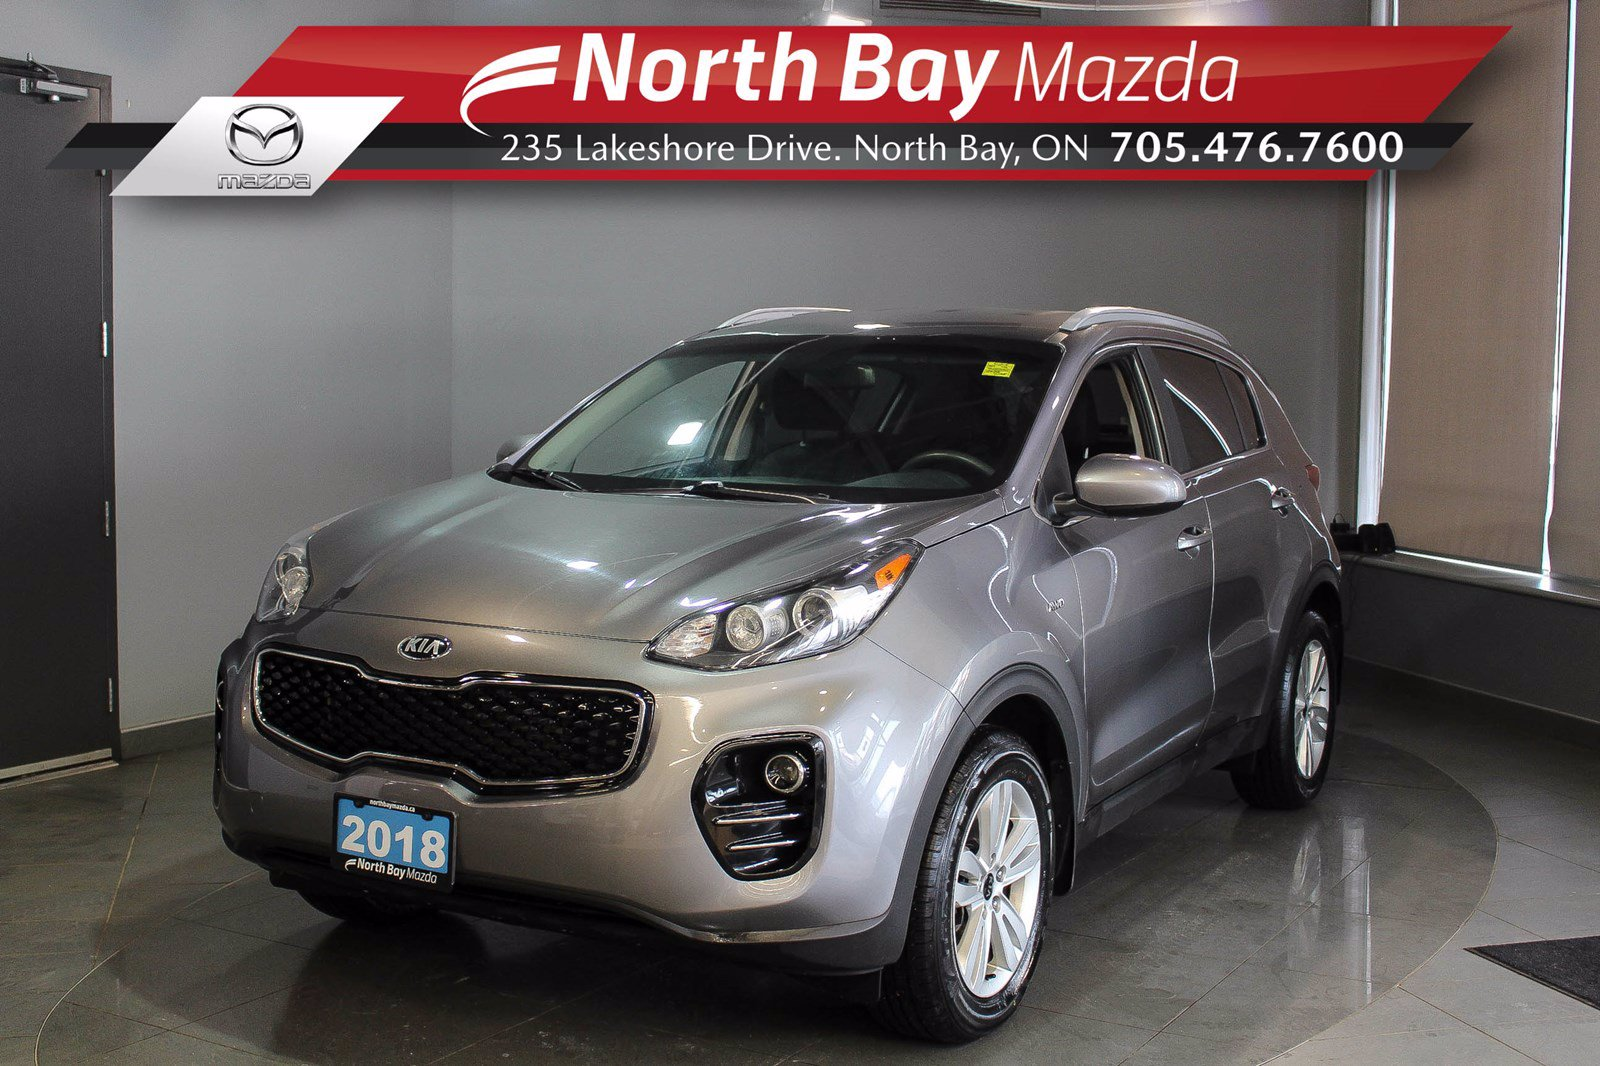 Pre-Owned 2018 Kia Sportage LX AWD - Virtual Tour & Curbside Delivery Available!